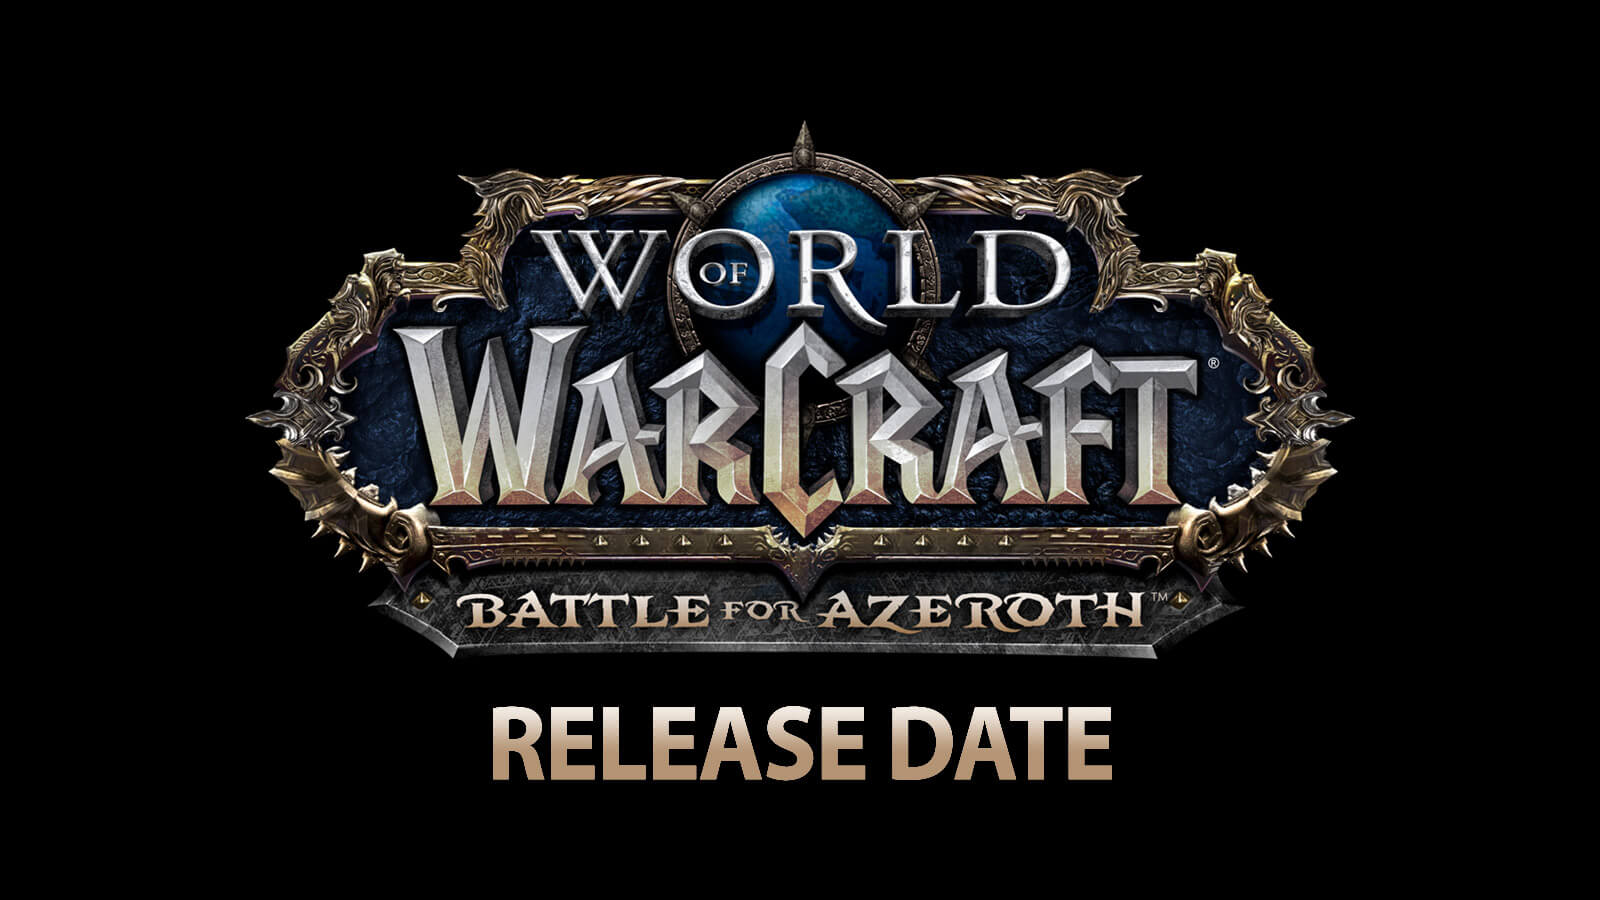 warcraft online dating Meet singles interested in world of warcraft dating and other hot girls and guys below.